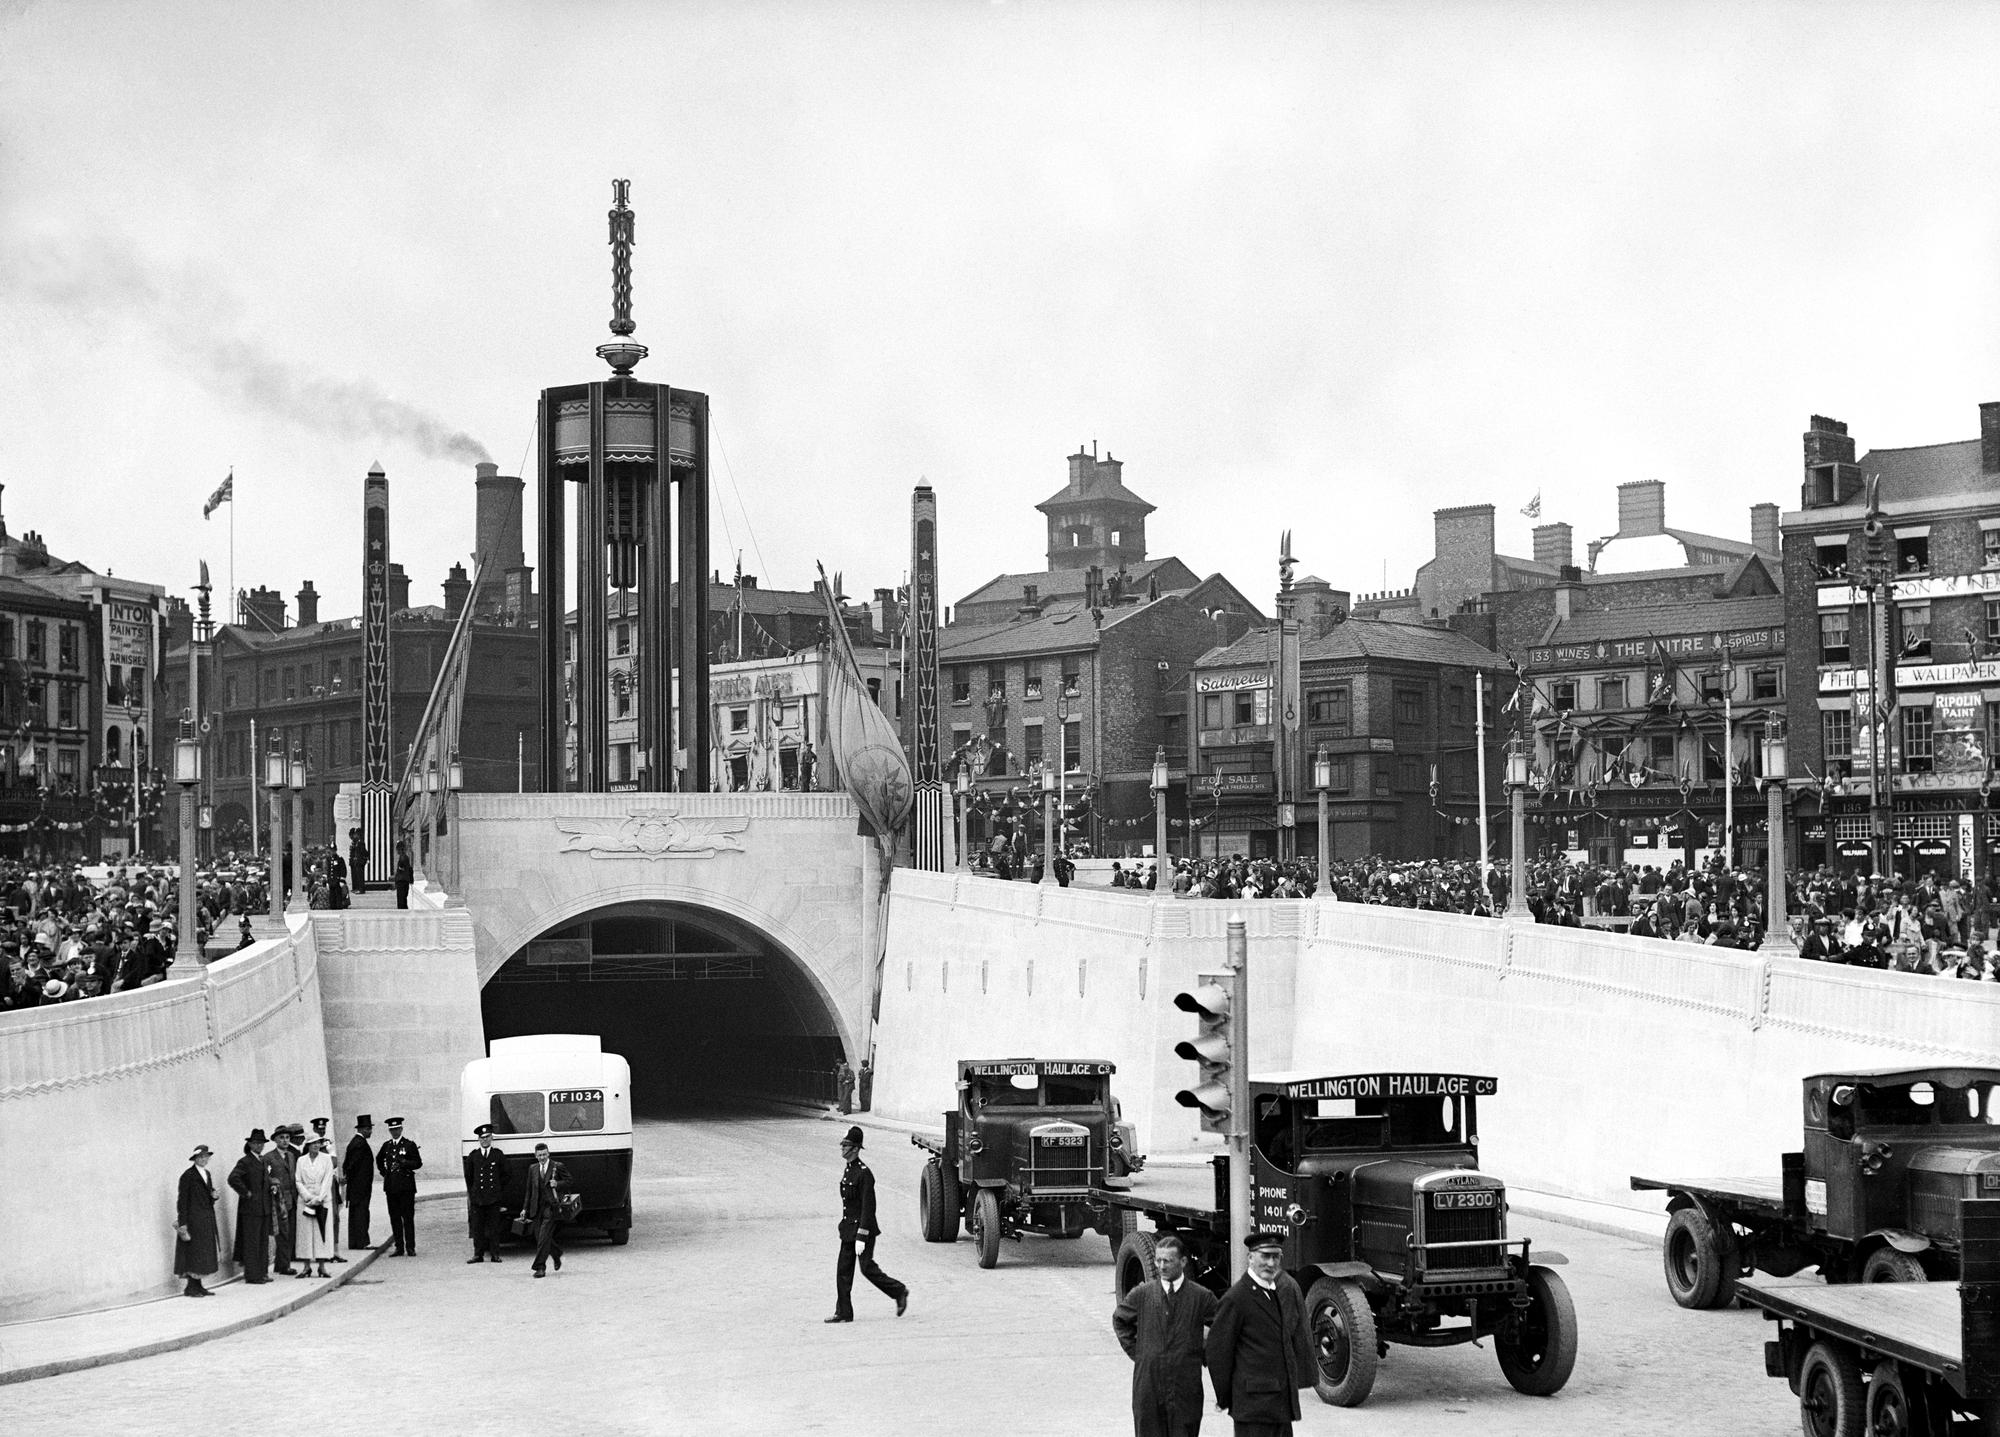 Queensway tunnel, Liverpool - Then